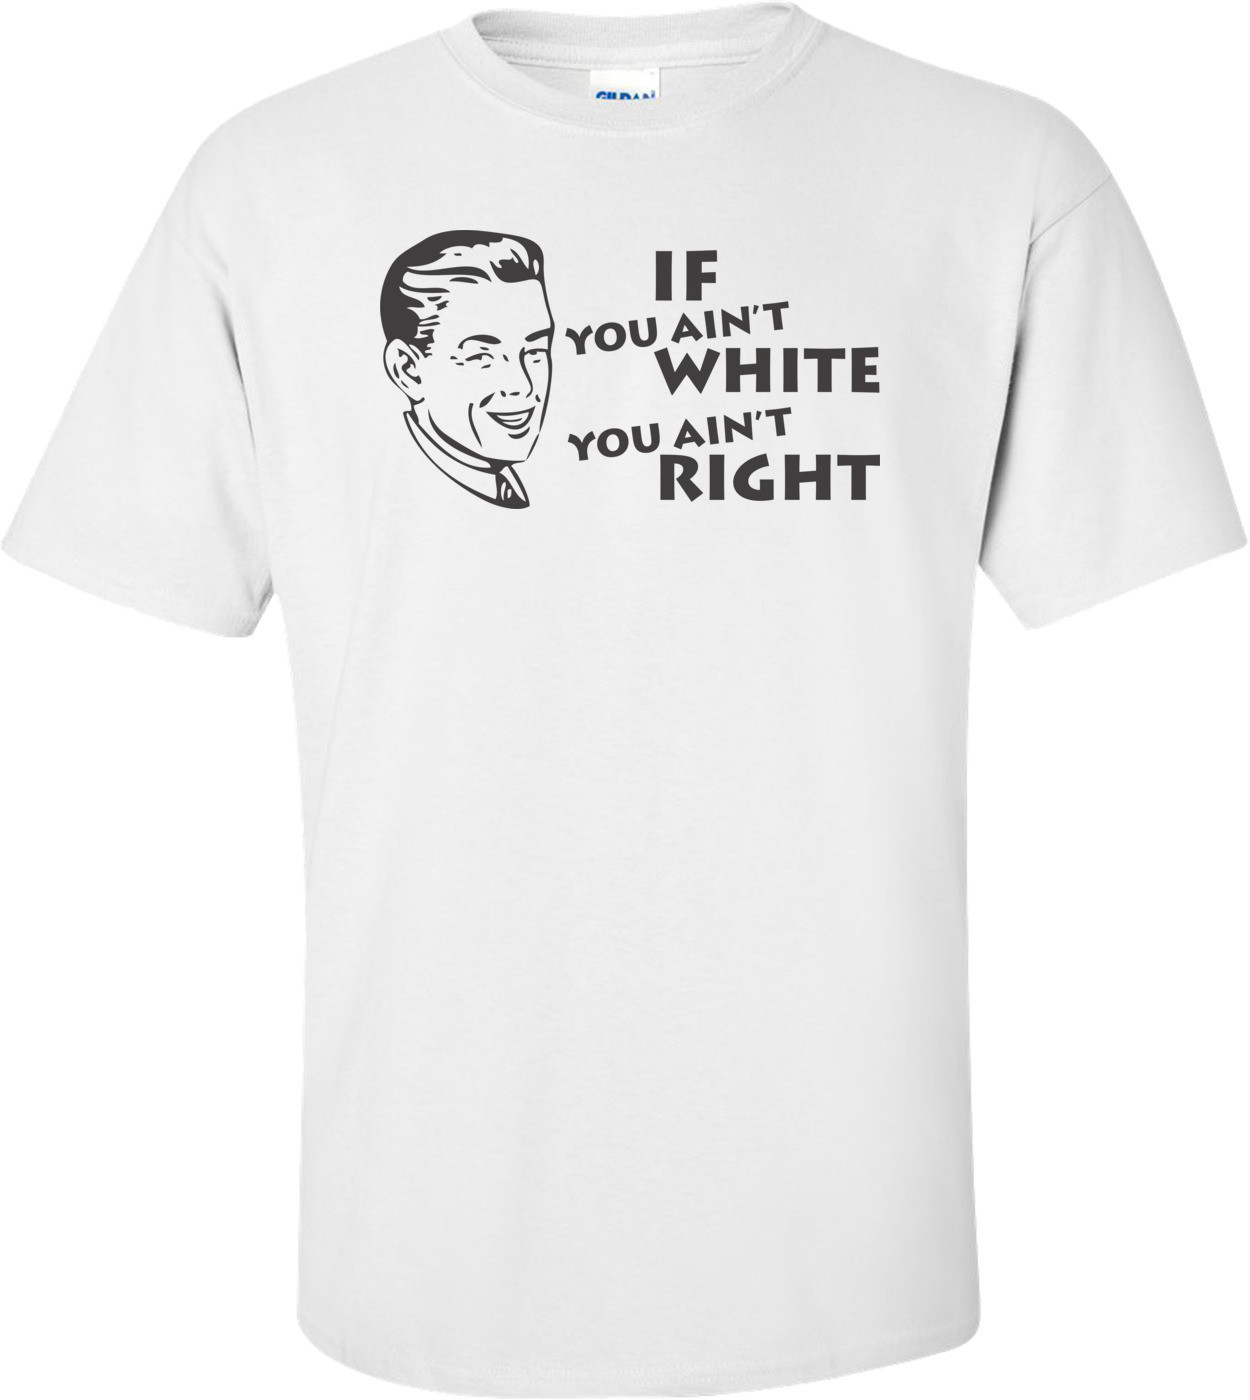 If You Ain't White You Ain't Right T-shirt